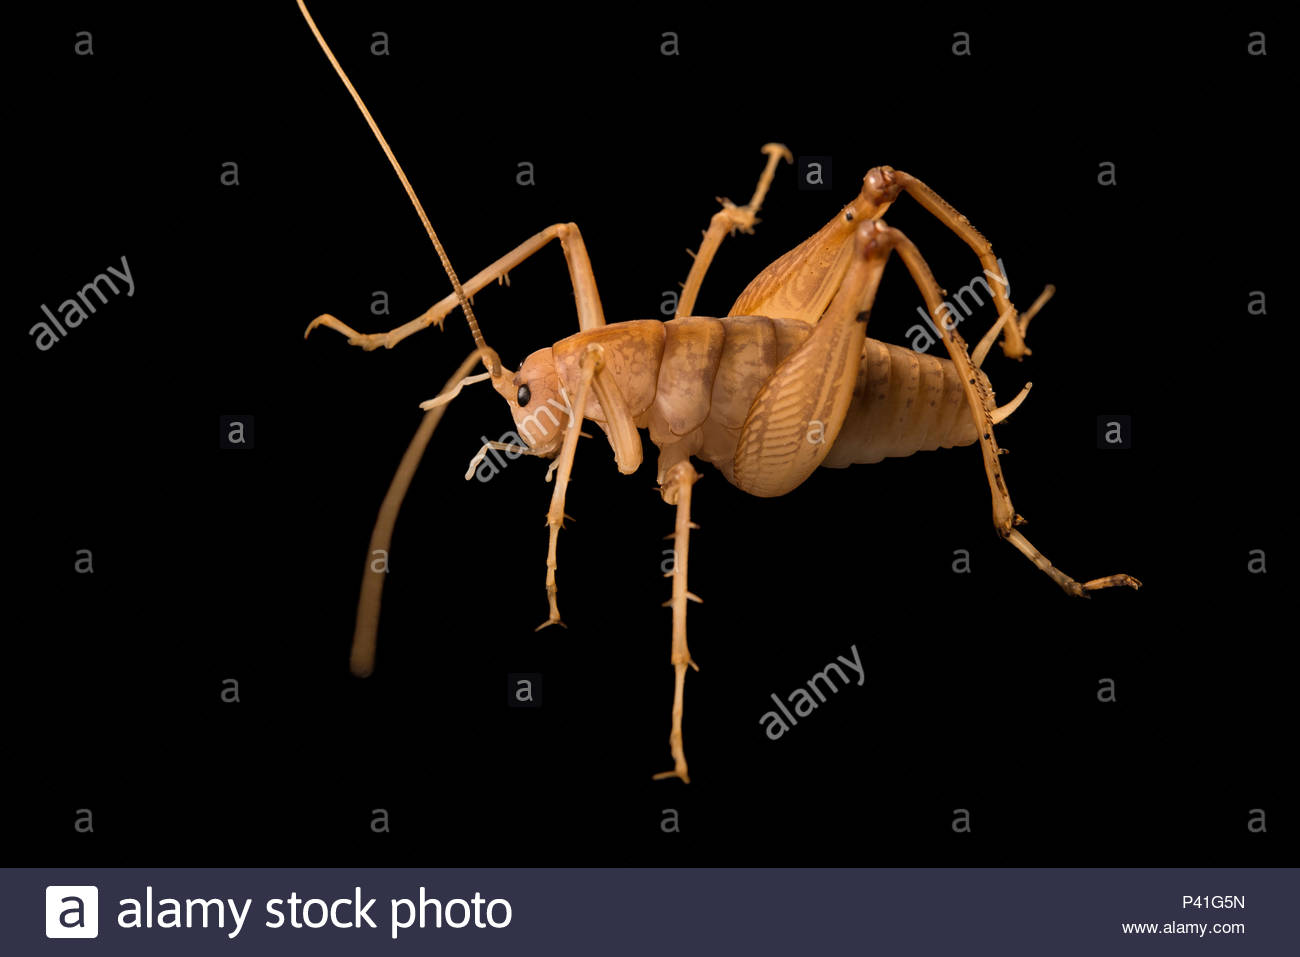 Camel cricket at the Urban Entomology Lab at the University of Florida in Gainesville. - Stock Image